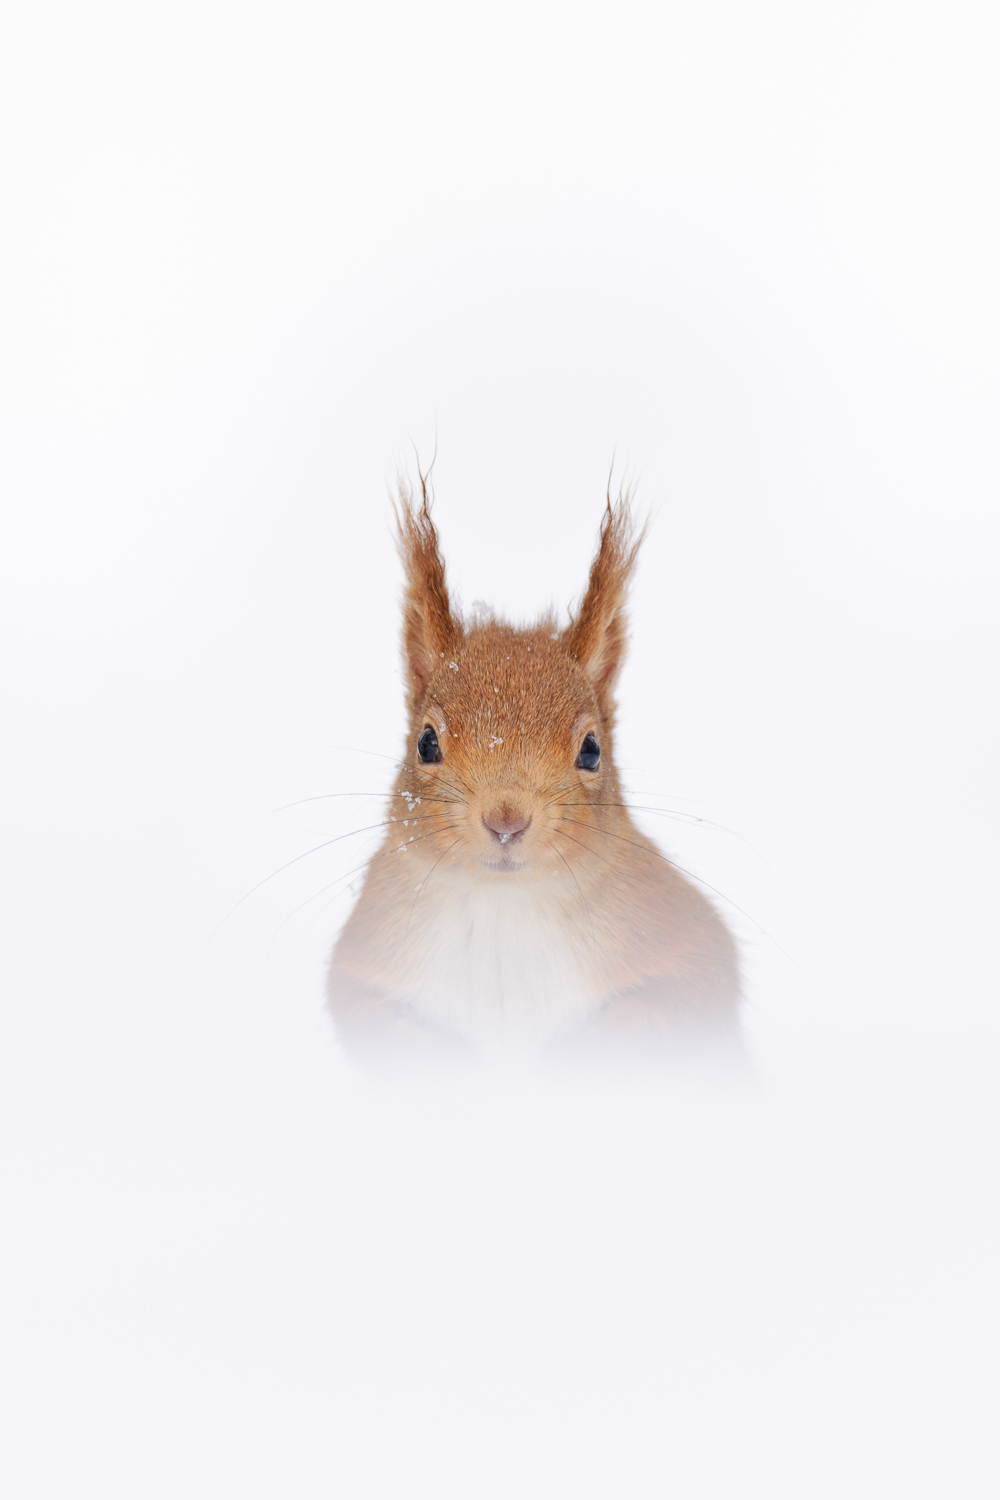 Copy of Red Squirrel in Snow